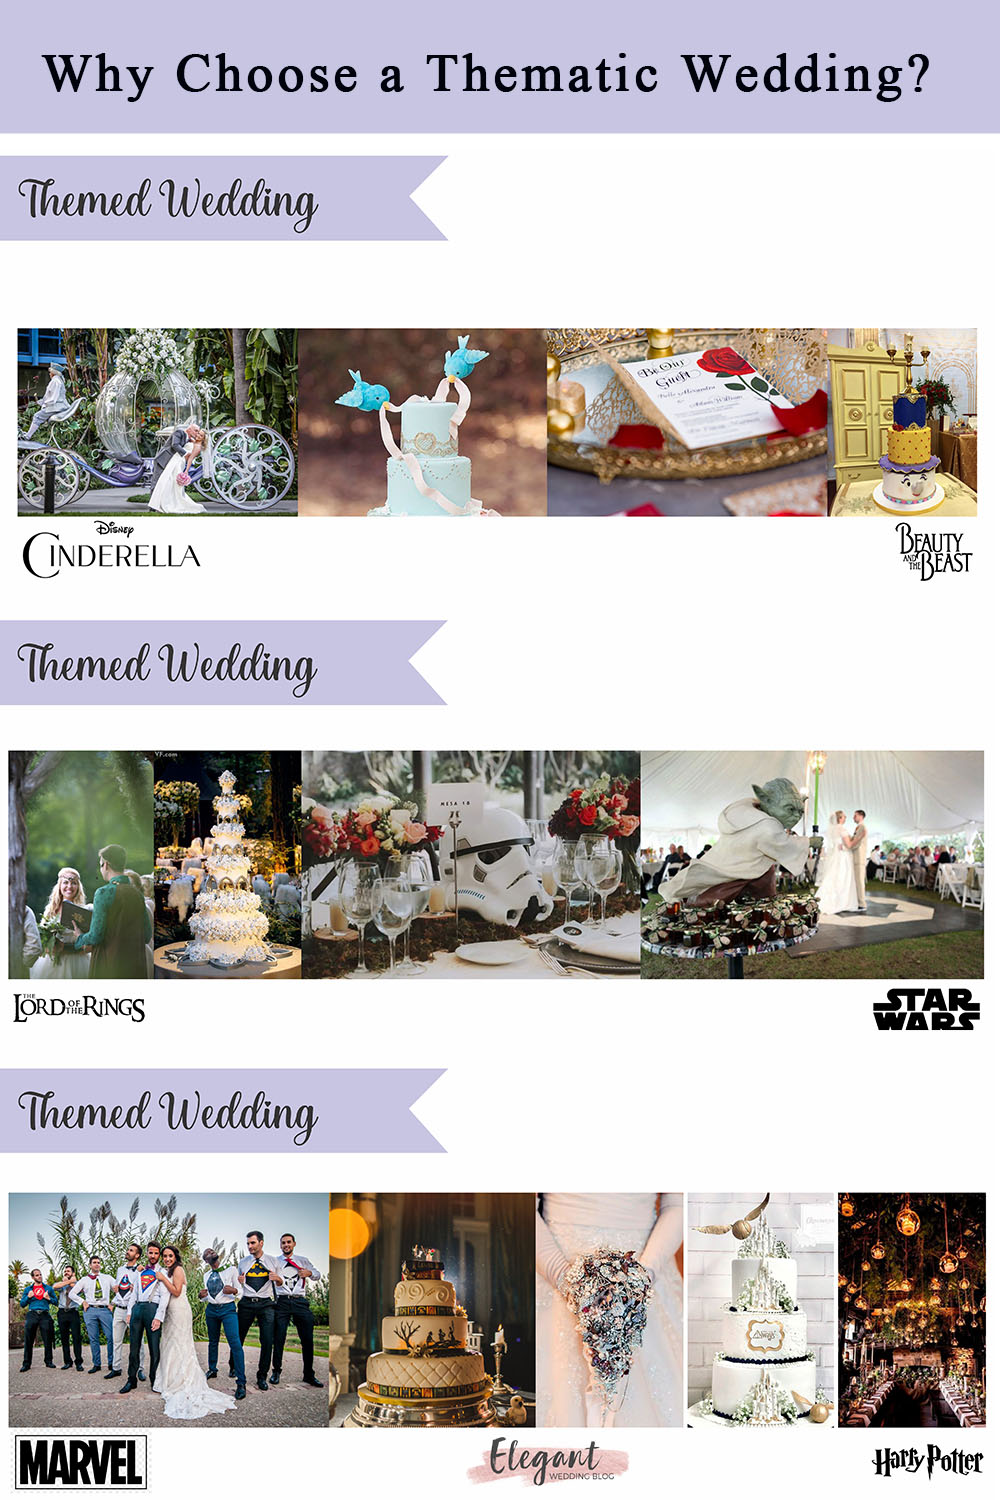 Why choose a unique thematic wedding for your big day